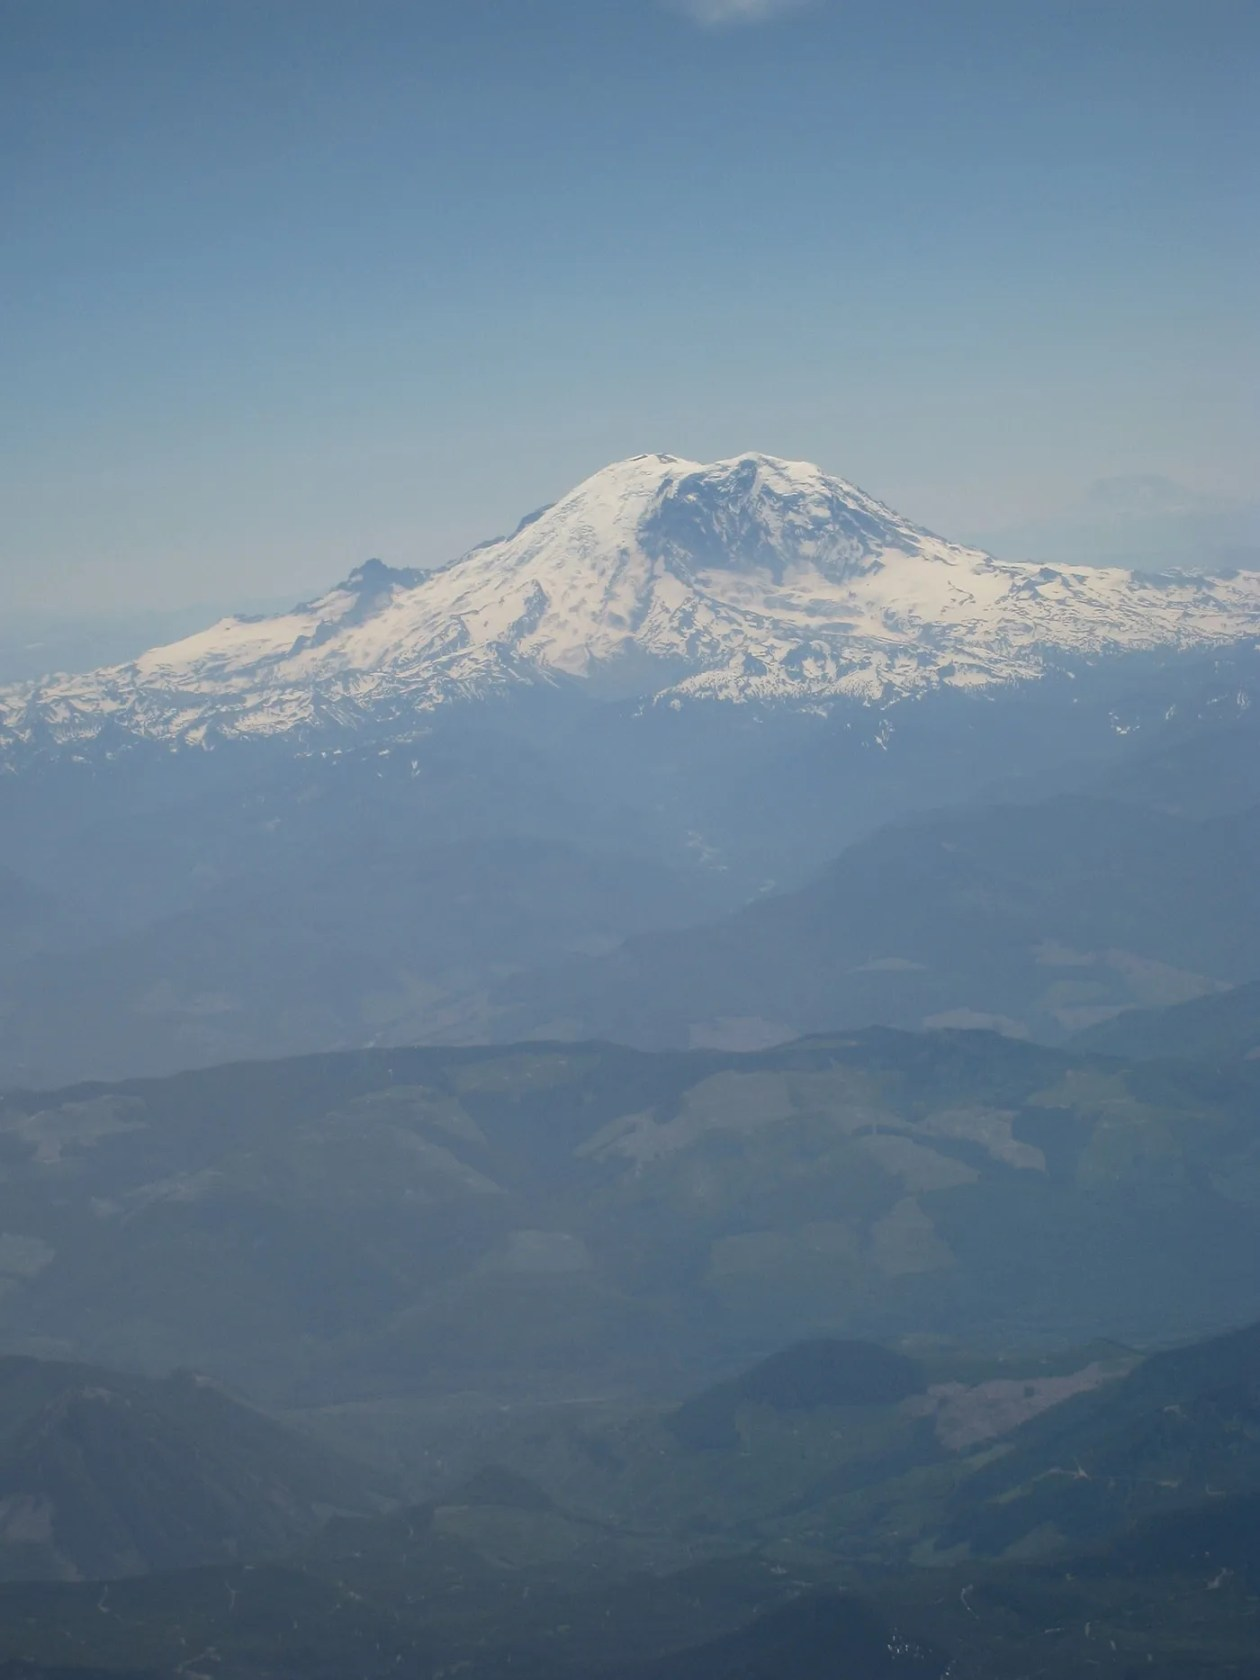 Flying from Seattle to New York - view of the mountain from the plane.